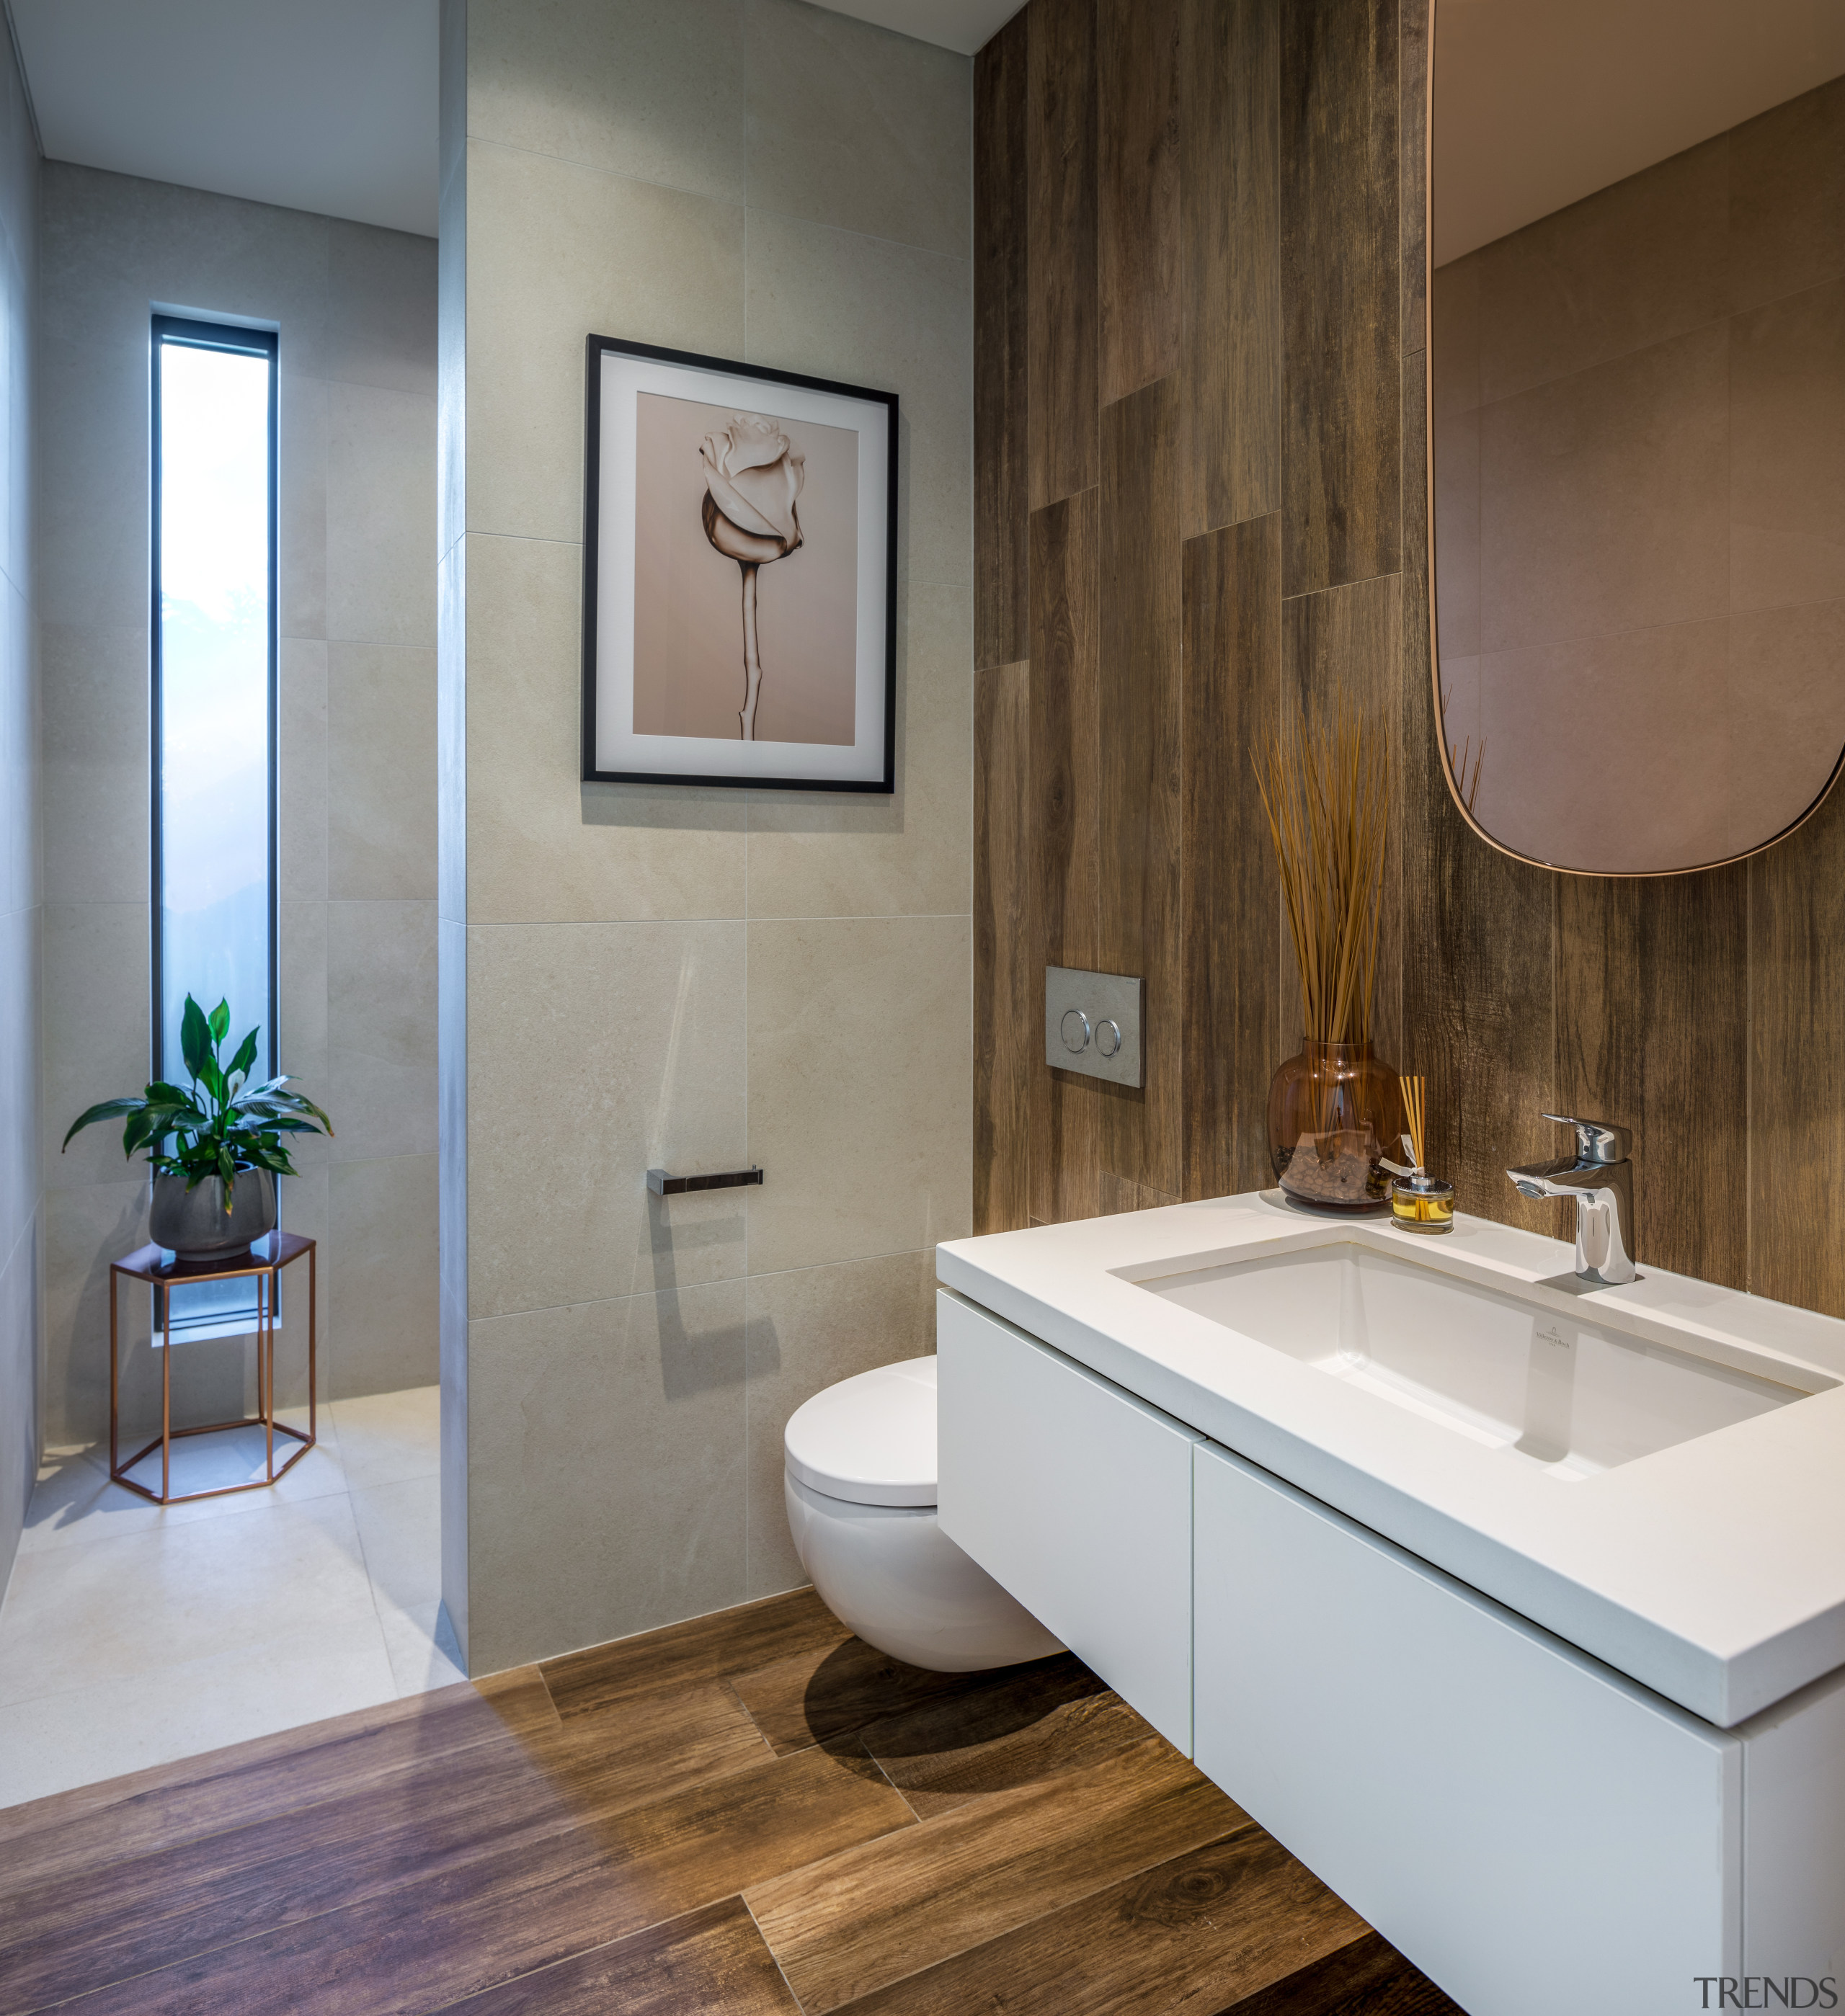 Natural materials and tall, slender windows are recurring architecture, bathroom, bathroom accessory, bathroom cabinet, bathtub, beige, bidet, building, ceiling, ceramic, floor, flooring, furniture, hardwood, home, house, interior design, marble, material property, plumbing fixture, property, real estate, room, sink, tap, tile, wall, gray, brown